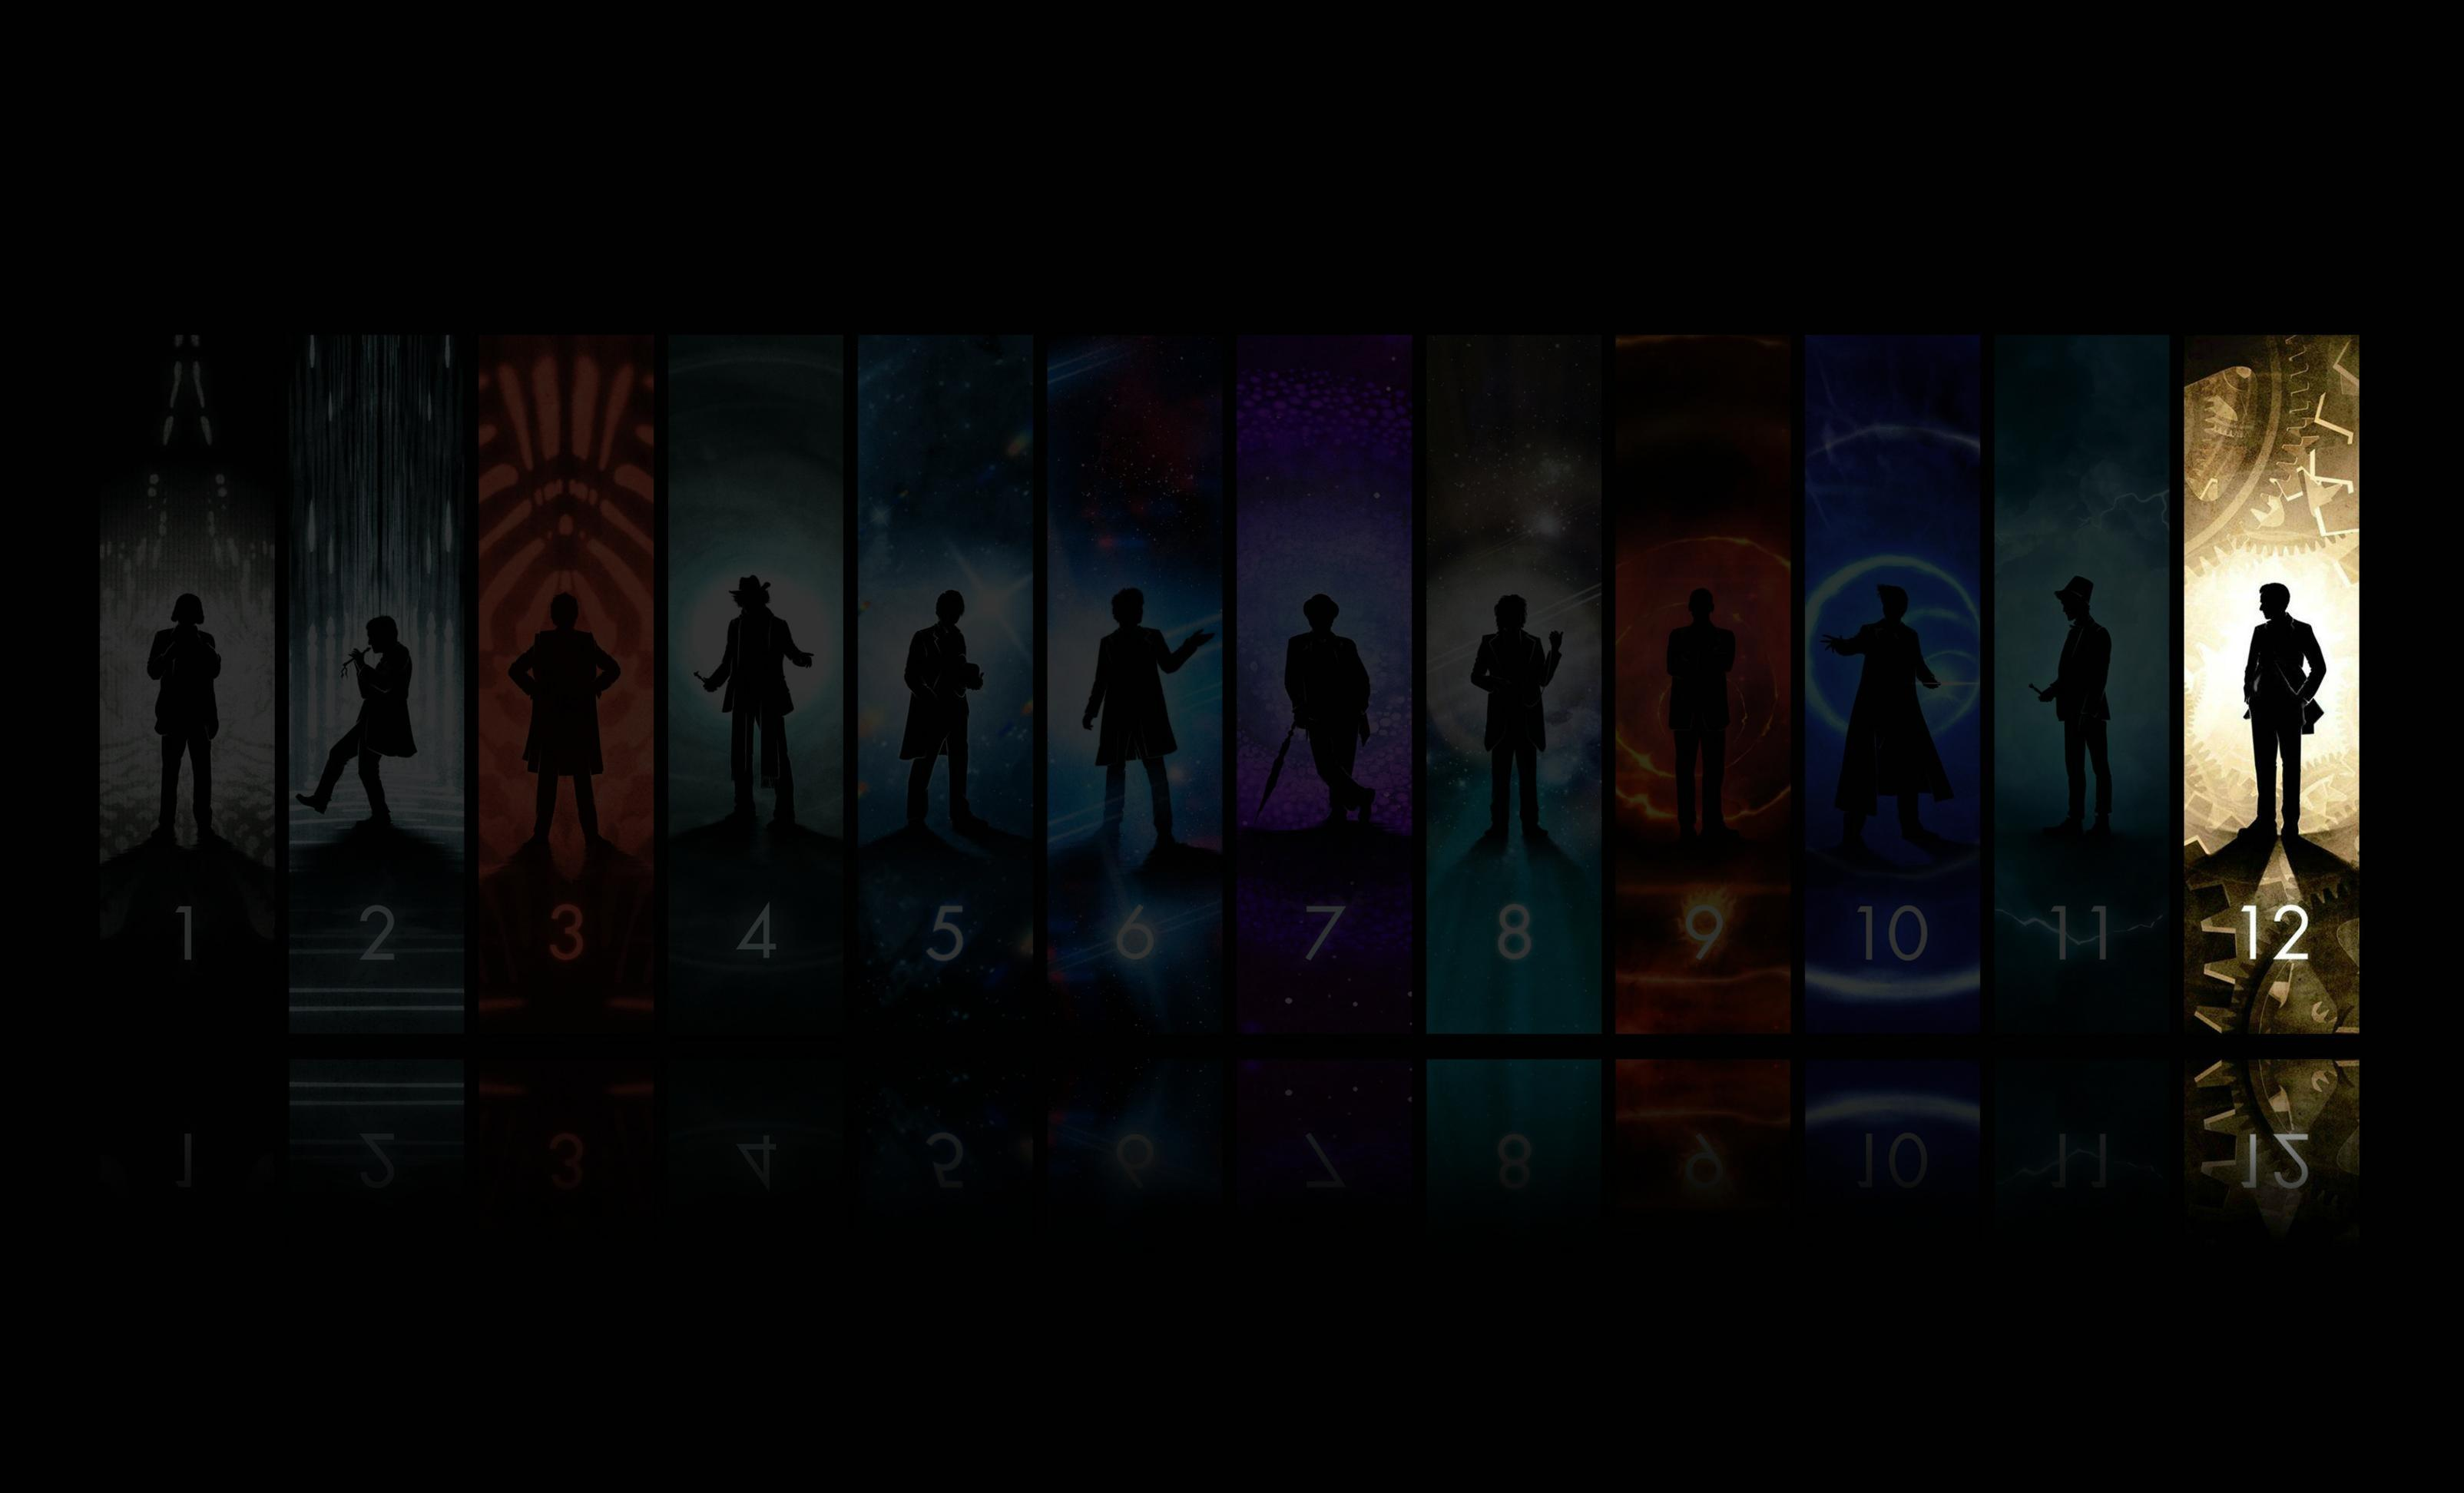 here's how you enjoy an awesome doctor who wallpaper